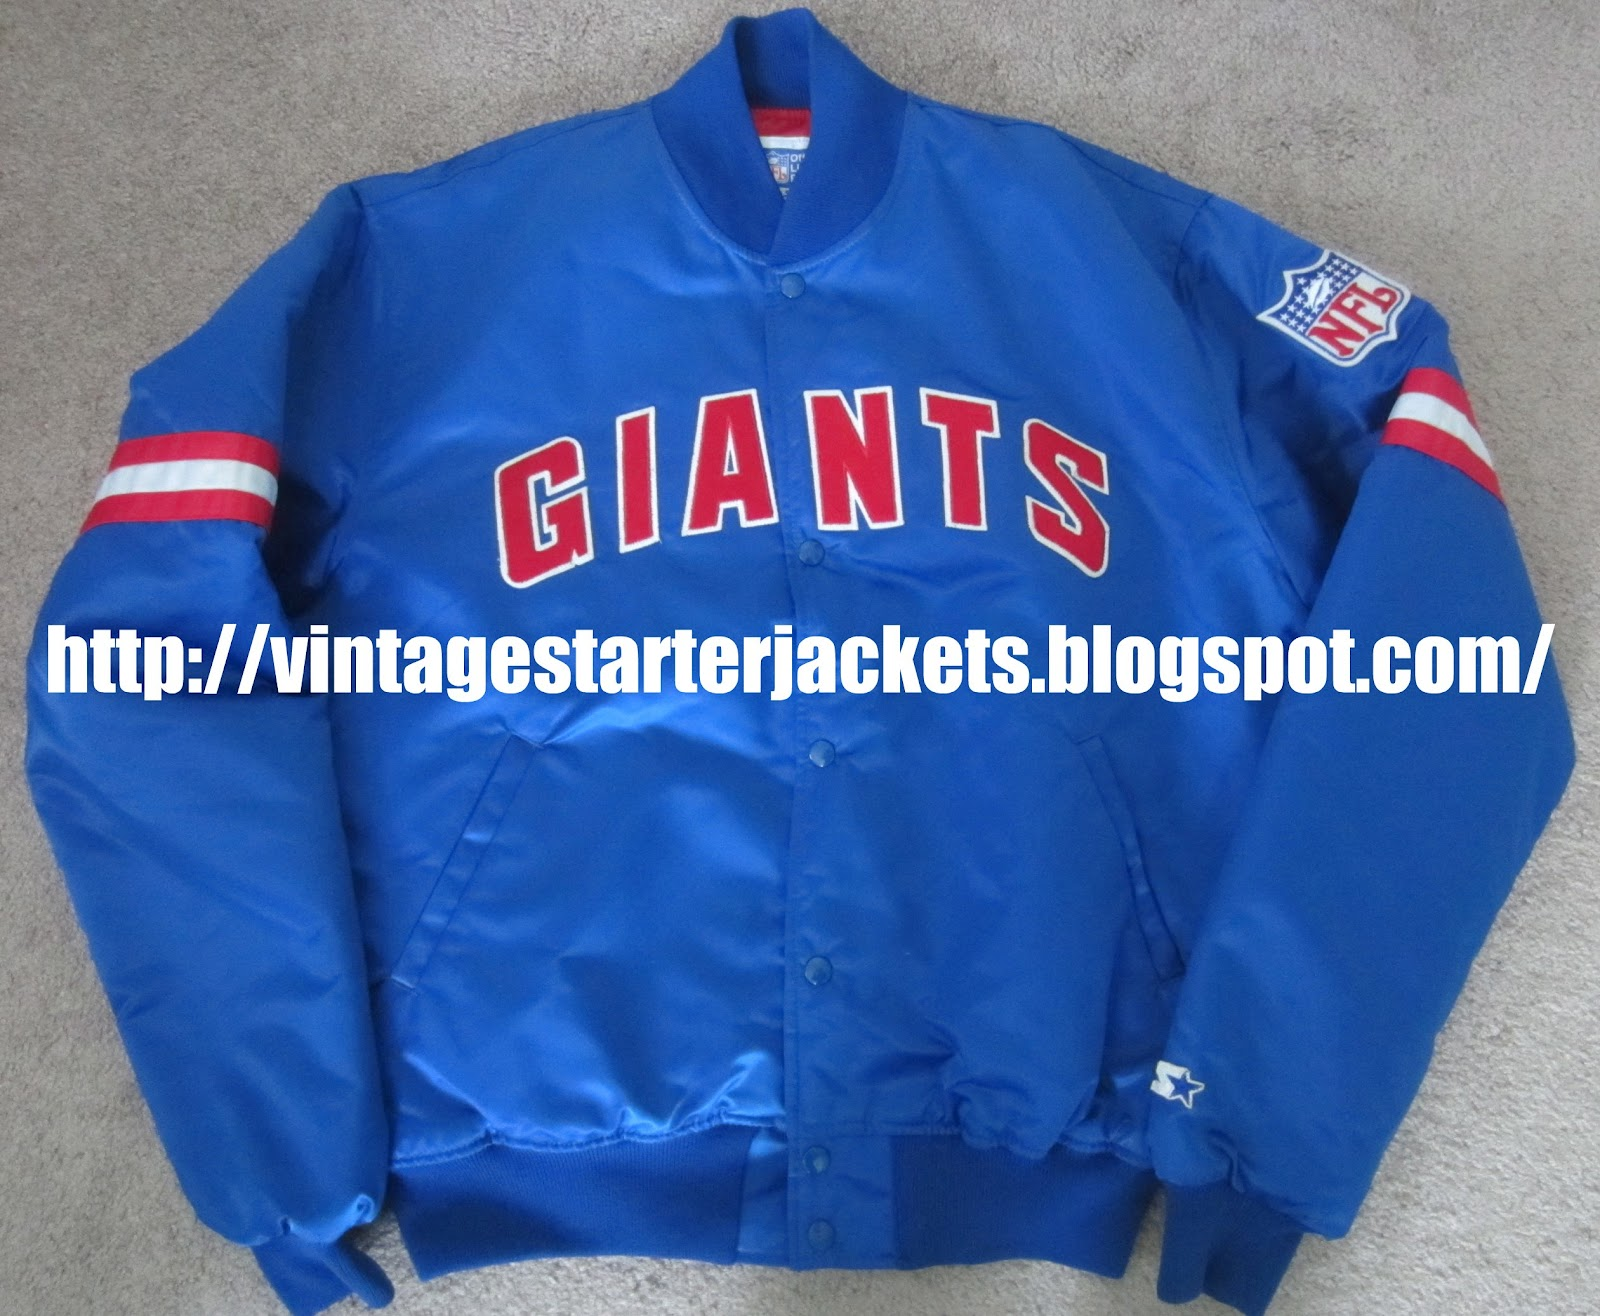 2a3da3c7b Vintage New York Giants Satin Starter Jacket Size XL - SOLD OUT ...